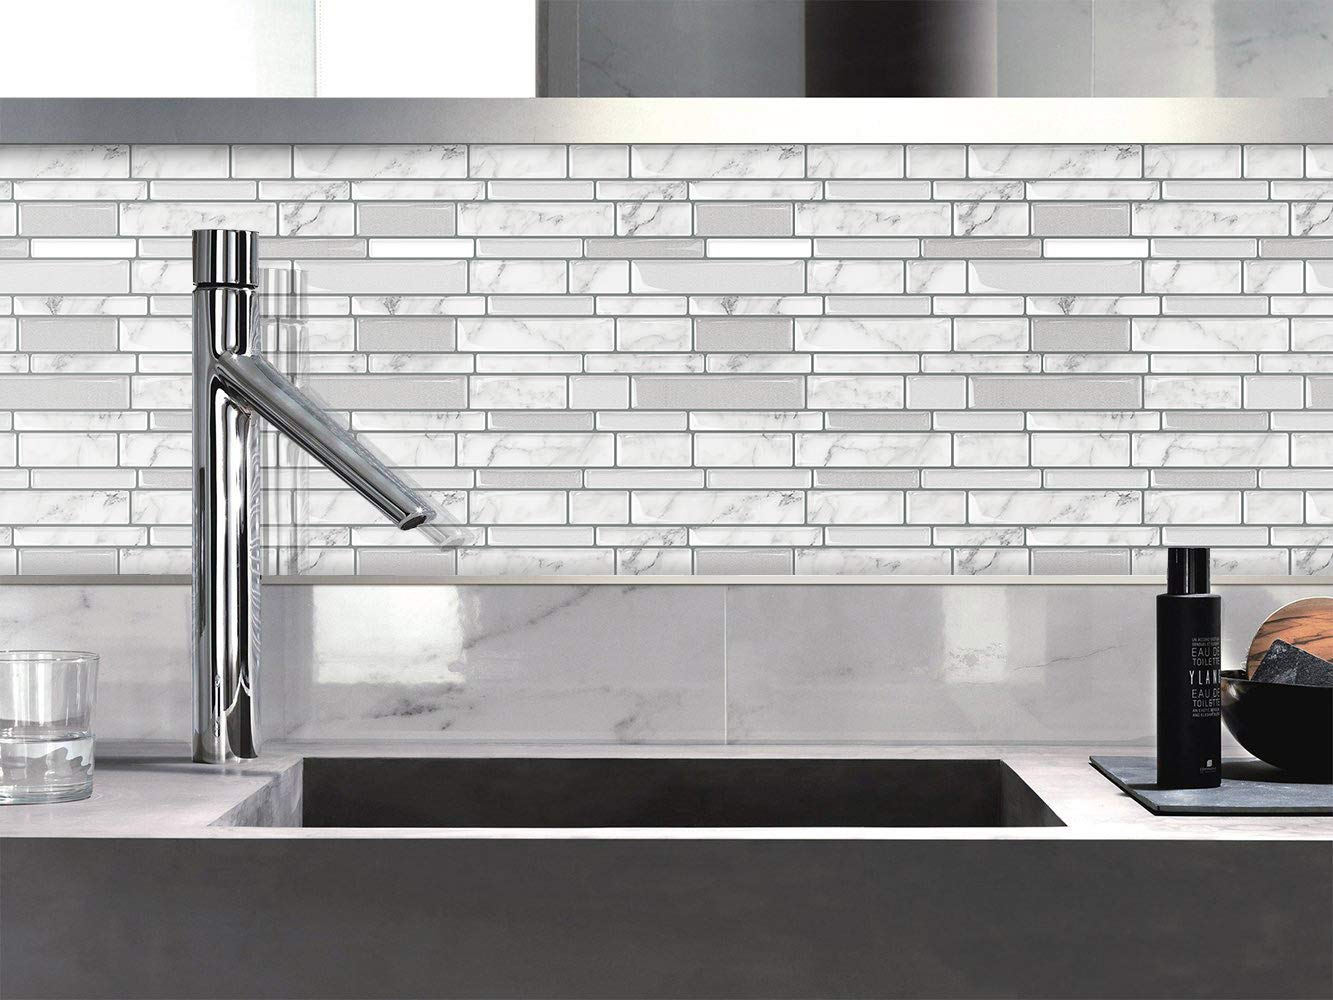 Tic Tac Tiles - Premium Anti Mold Peel and Stick Wall Tile Backsplash in Polito Design (Blanco, 6) by Tic Tac Tiles (Image #4)